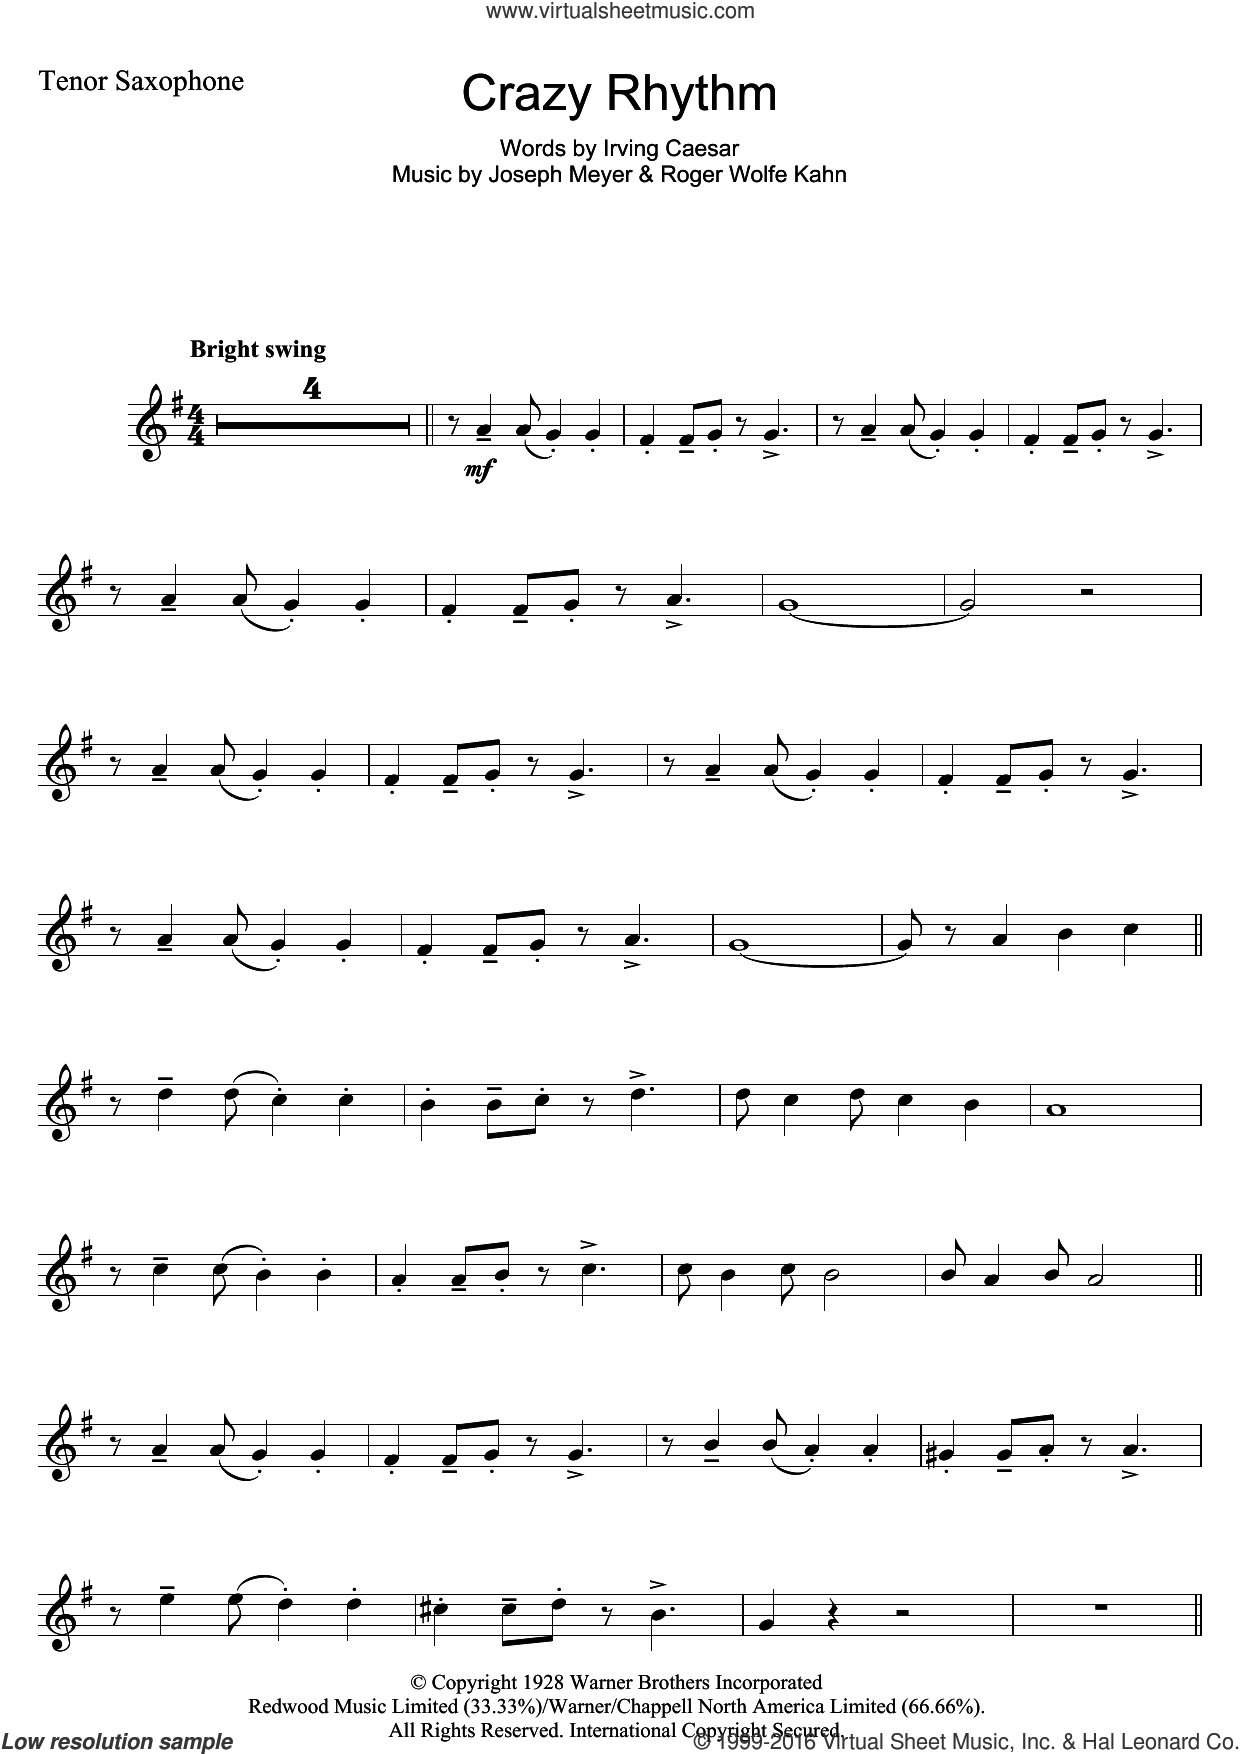 Crazy Rhythm sheet music for tenor saxophone solo by Roger Wolfe Kahn